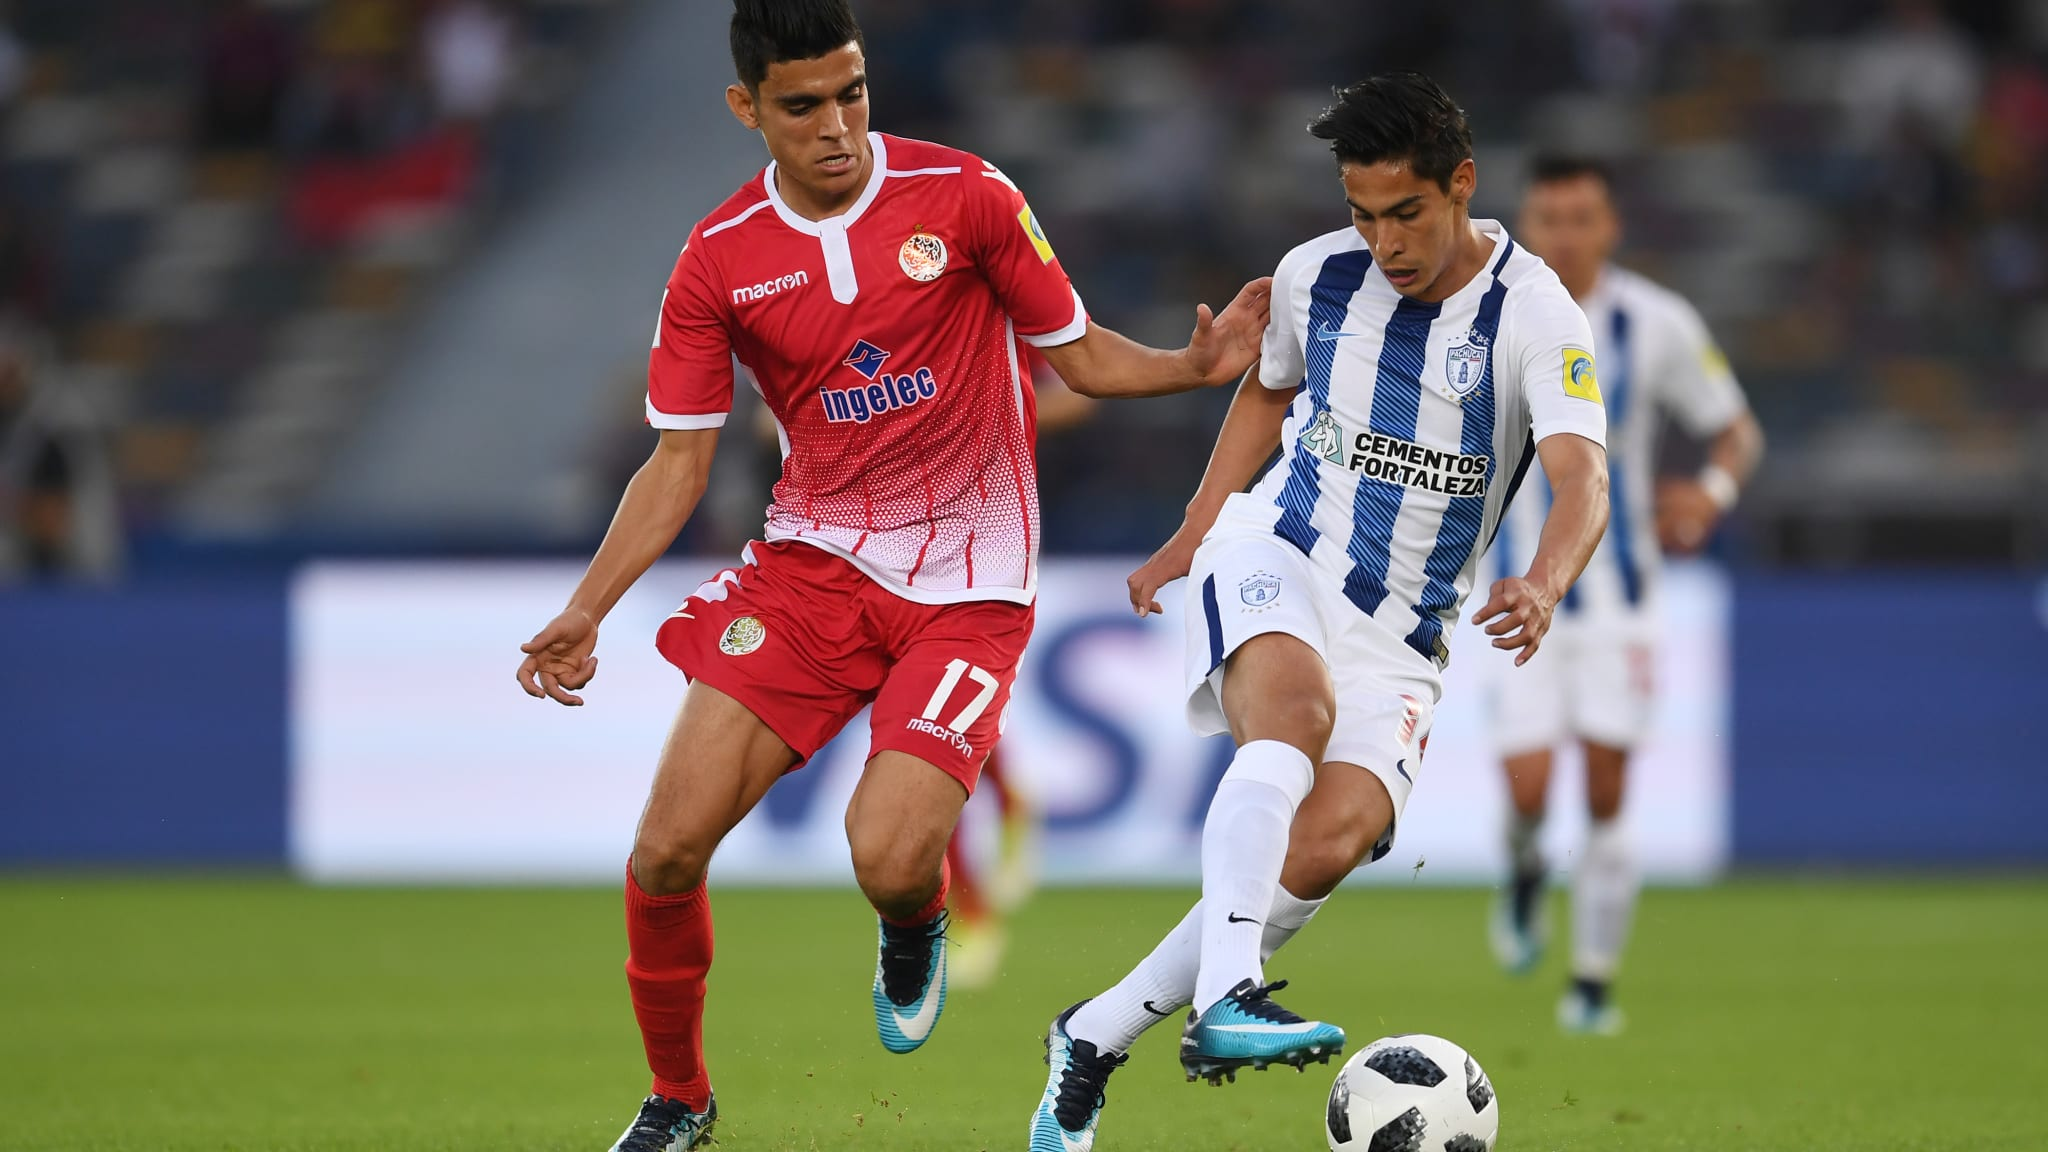 Erick Aguirre of Pachuca is challenged by Achraf Bencharki of Wydad Casablanca